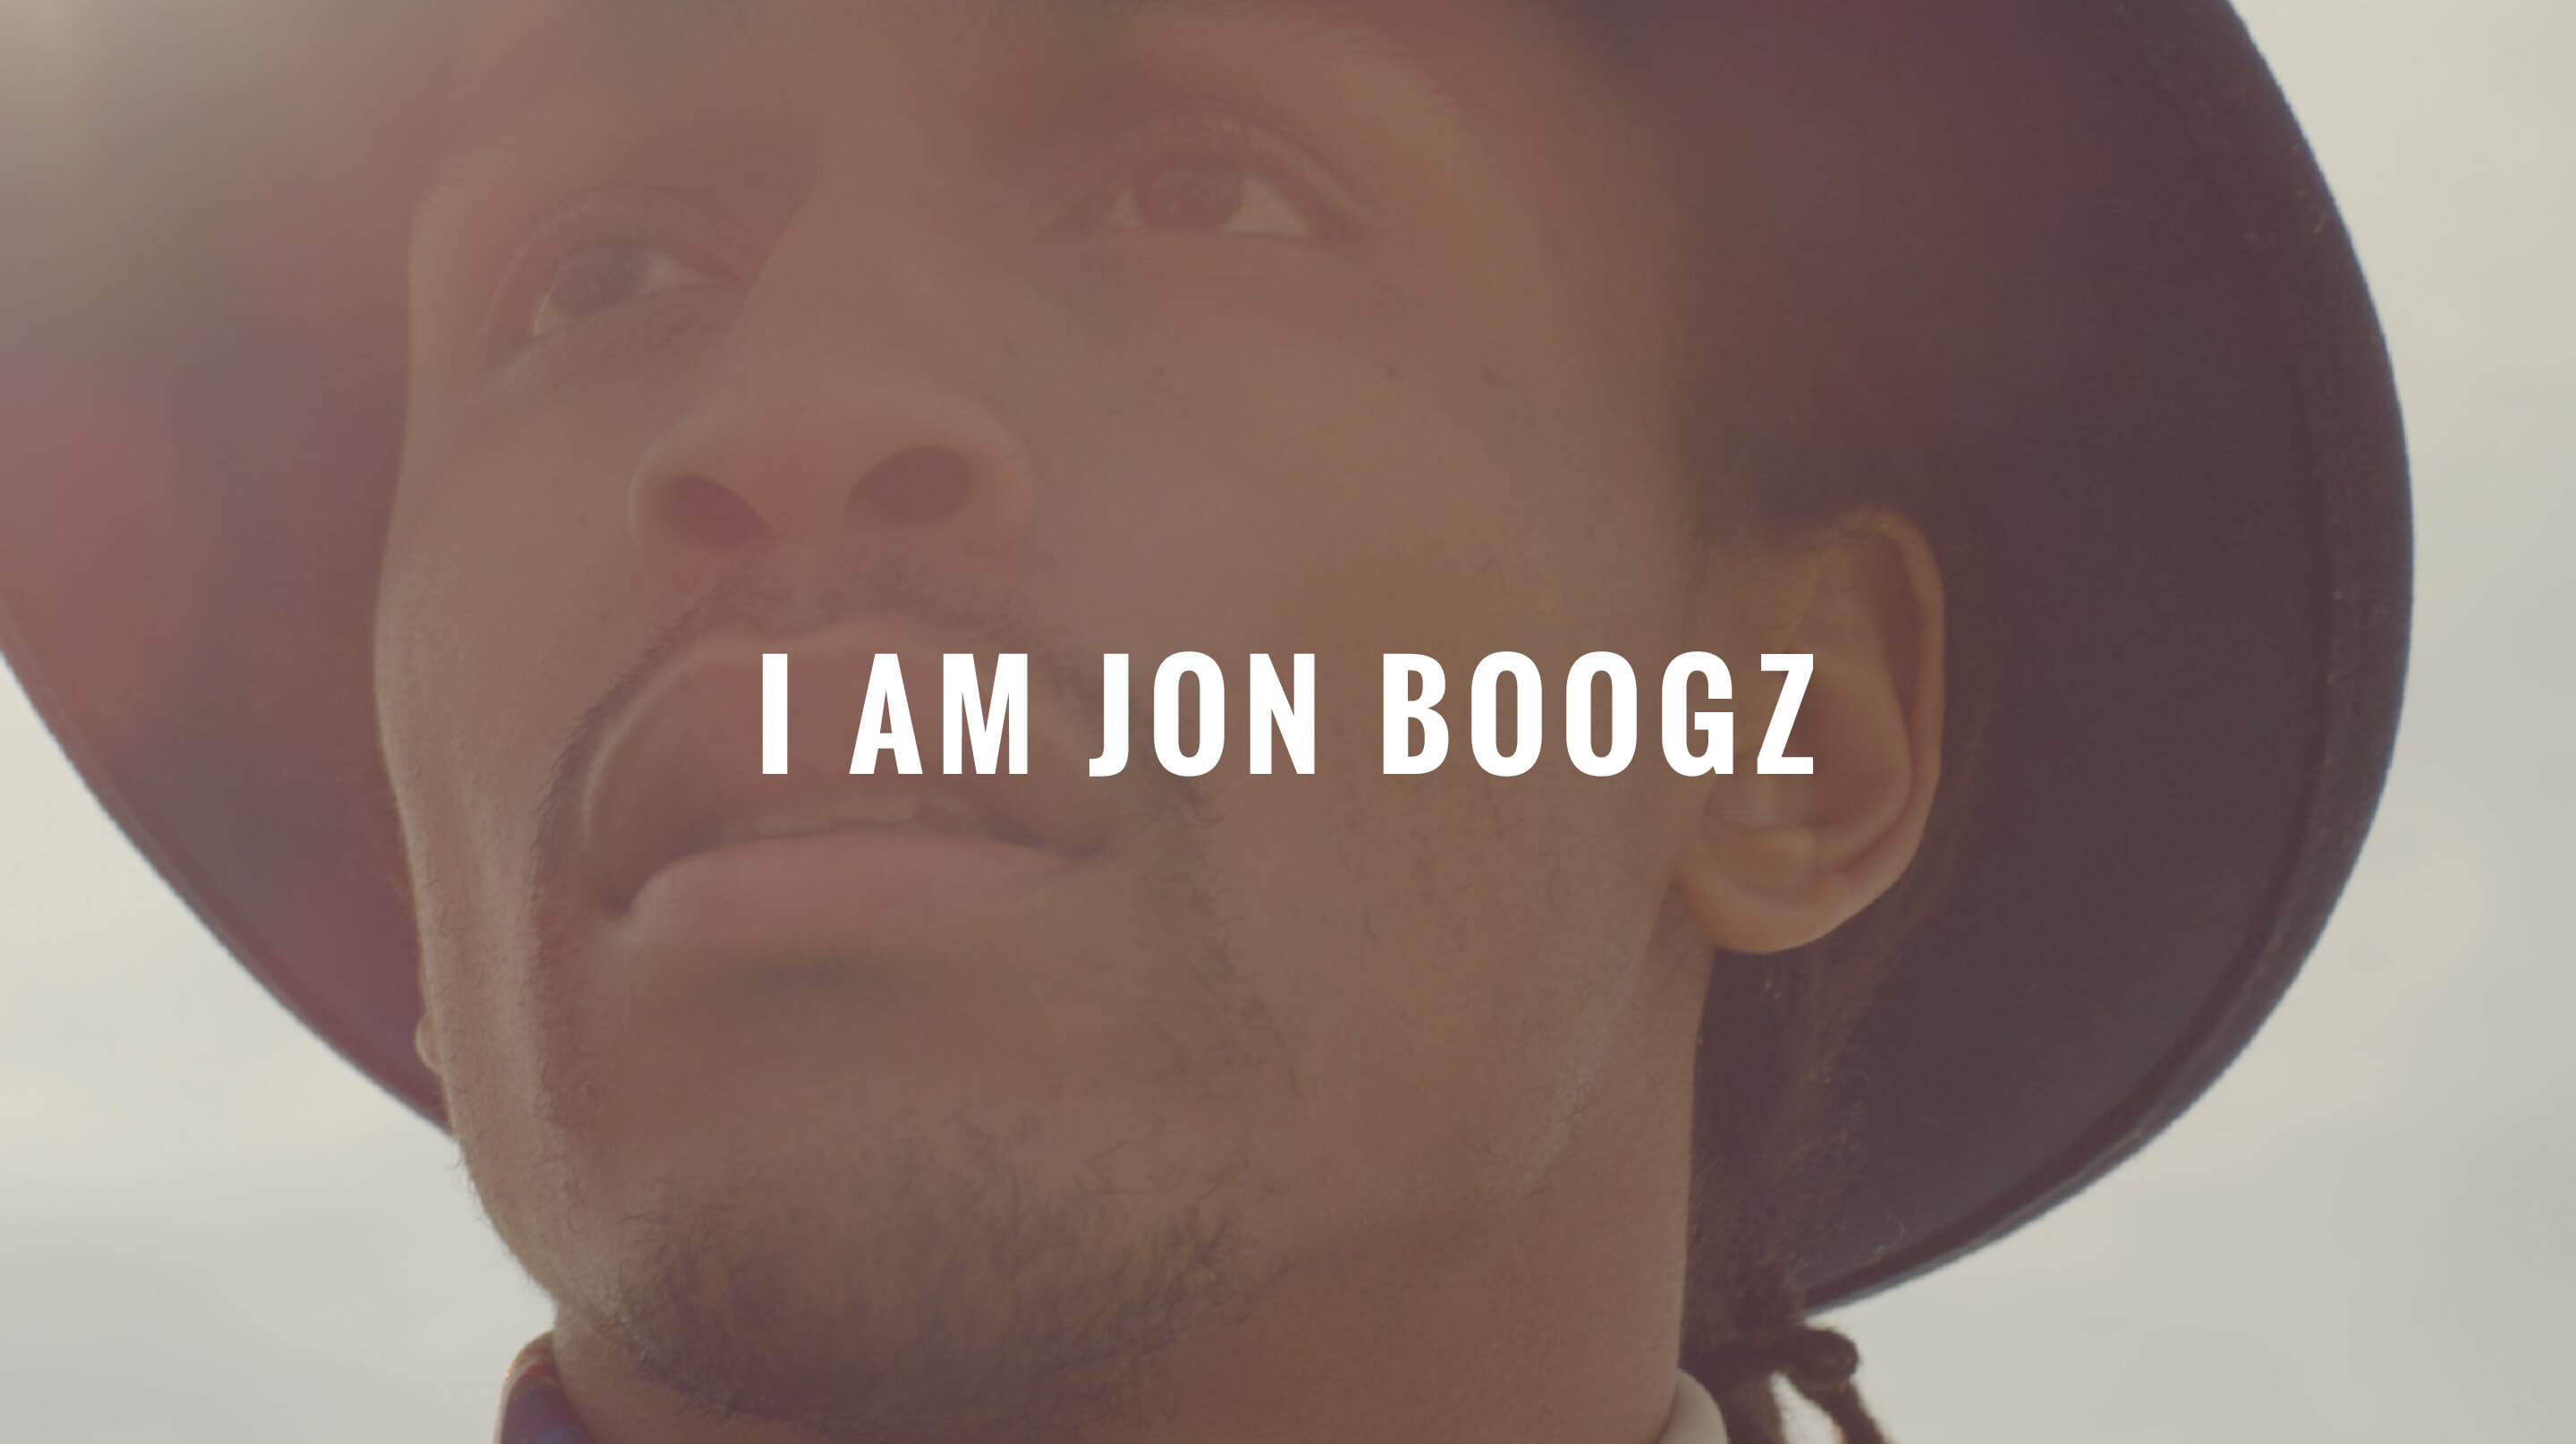 I am Jon Boogz